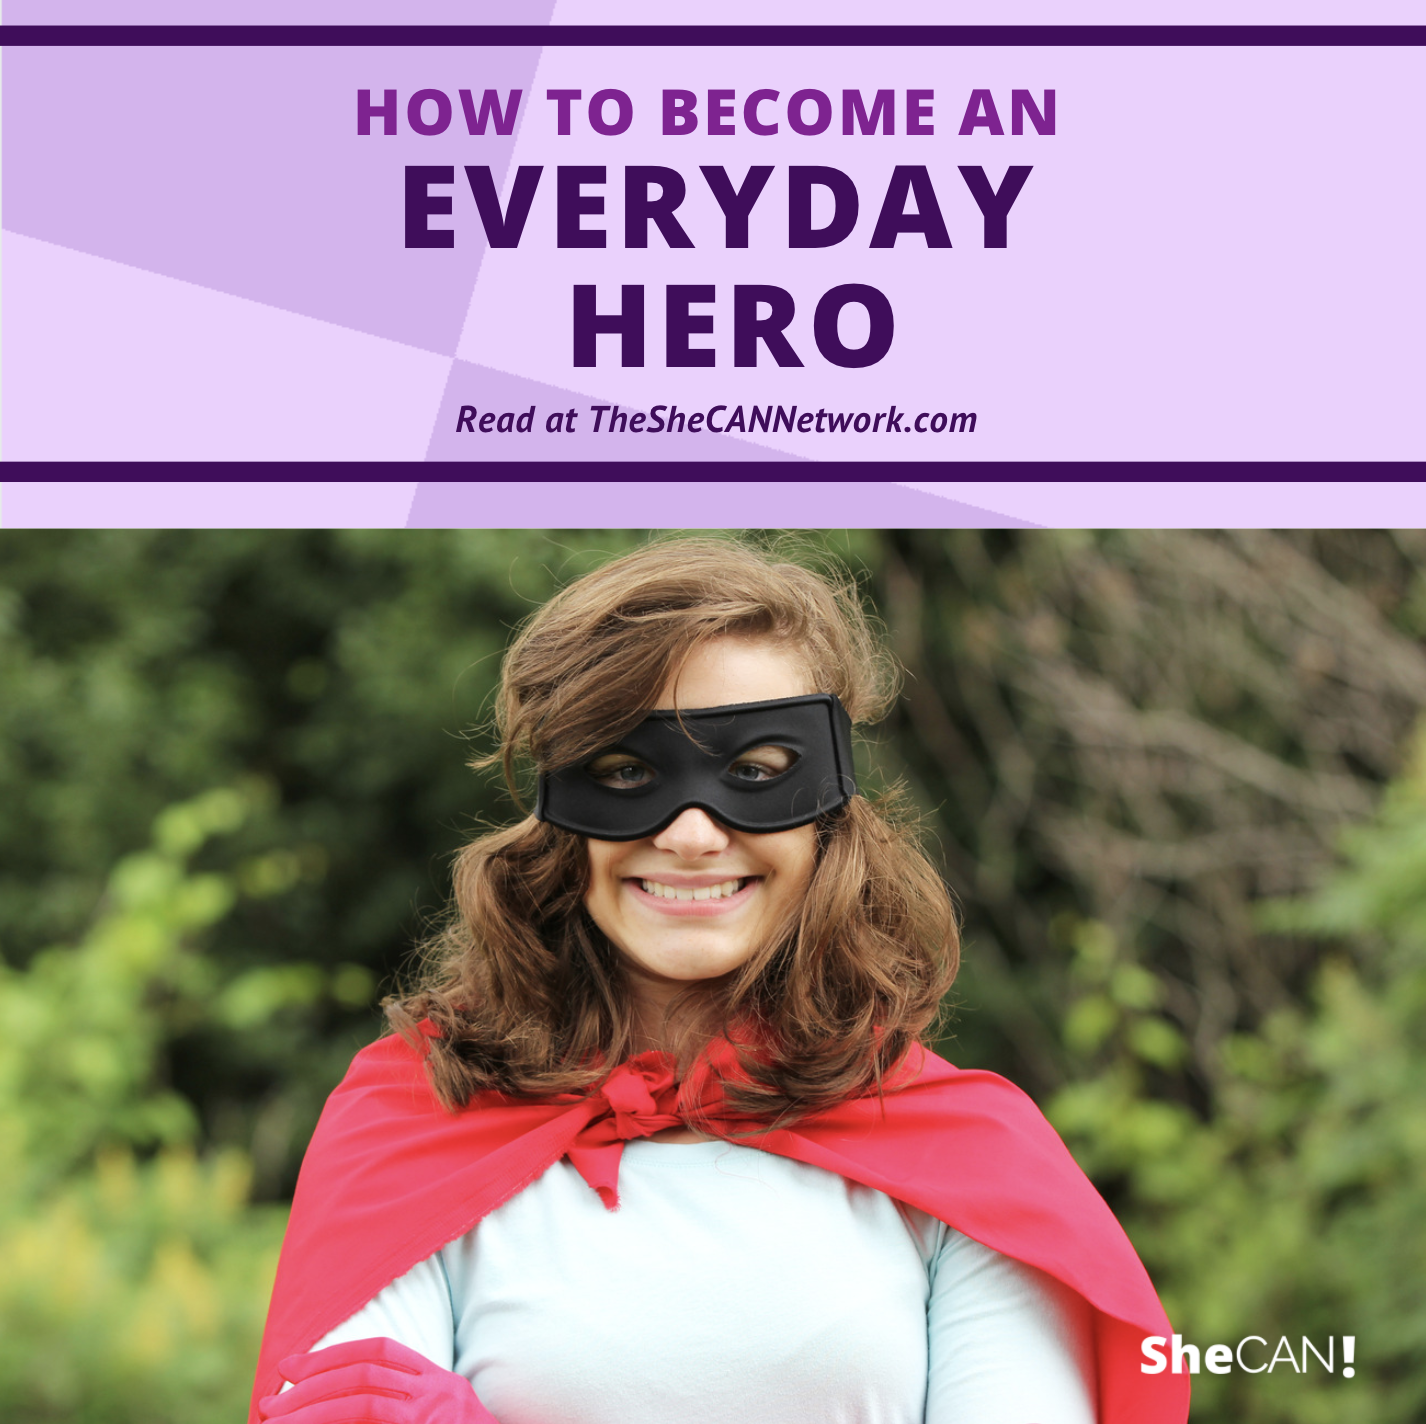 The SheCAN! Network - everyday hero